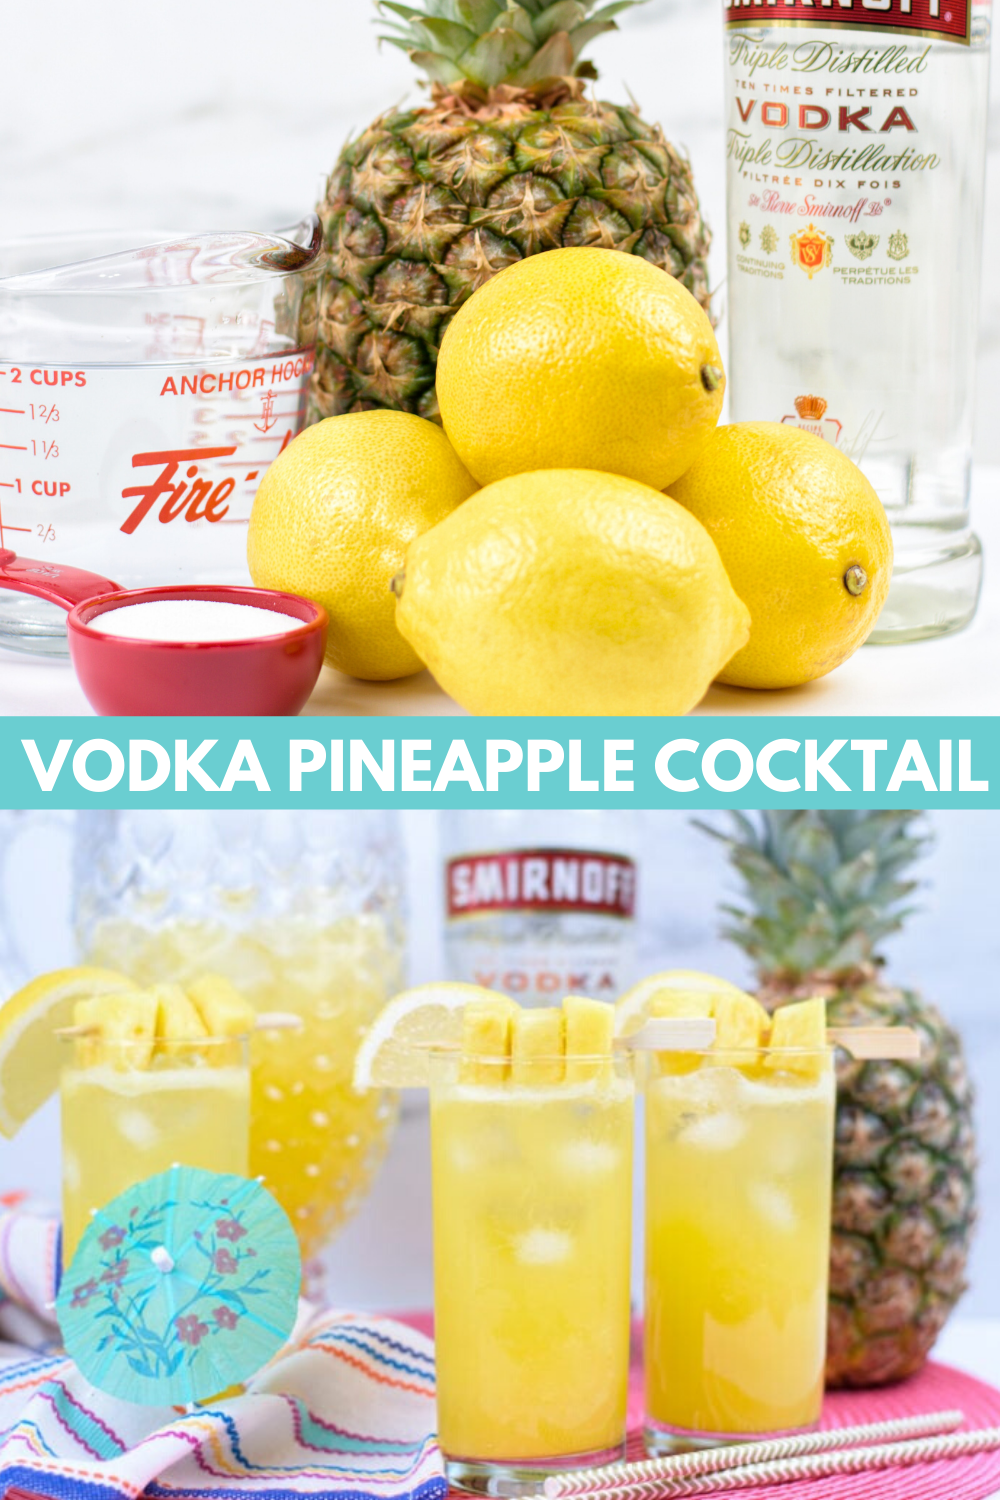 Pineapple Cocktail: Pineapple Vodka Party Punch 🍍